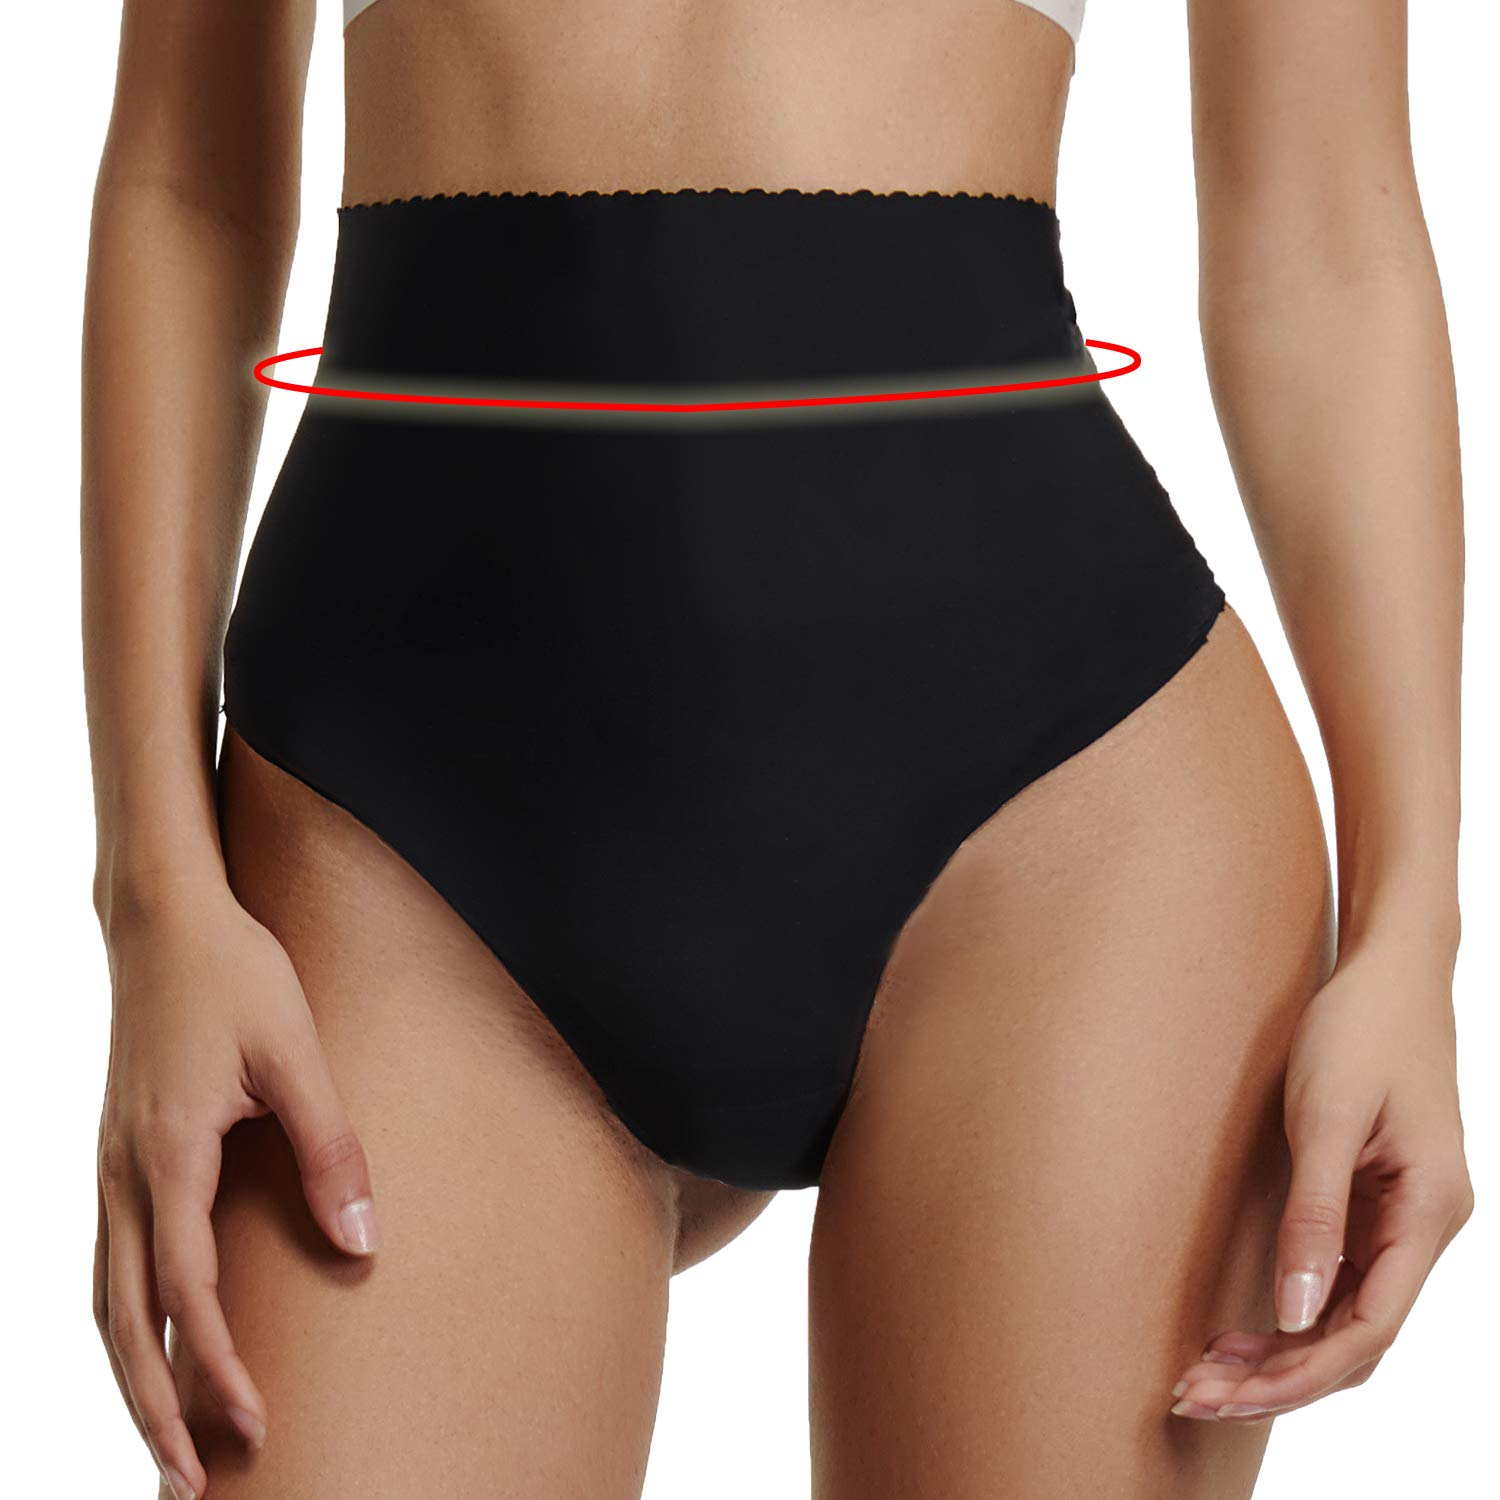 a2371392f25f5 ✅Seamless   Keep Slim✅ -- Body shaper with thong gives a smooth and fitted  body shape and makes you look really slim. Waist shaper thong is  breathable